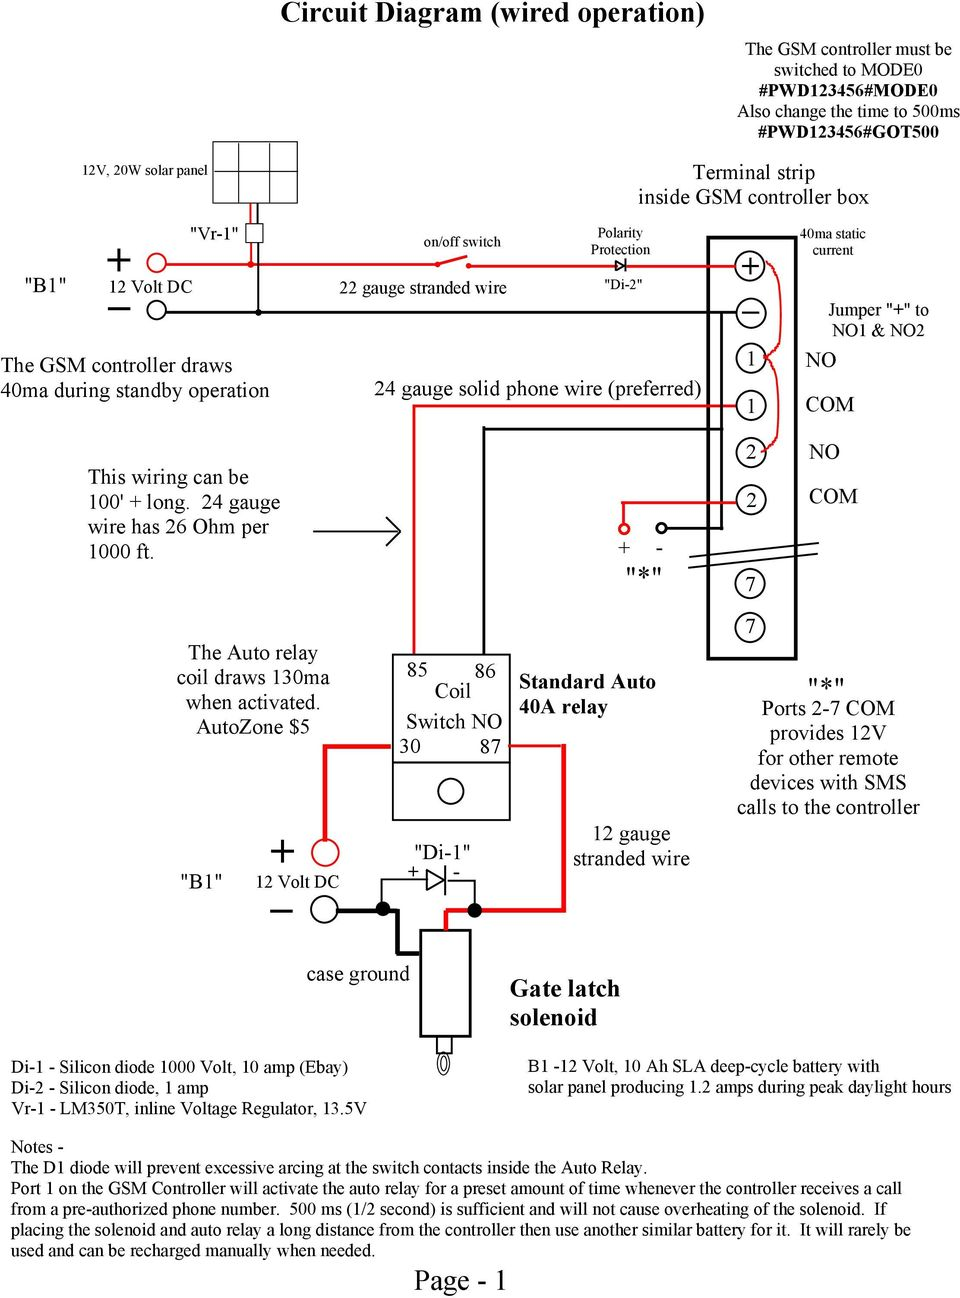 medium resolution of static current no jumper to no1 no2 this wiring can be 100 2 circuit diagram wireless operation 12v